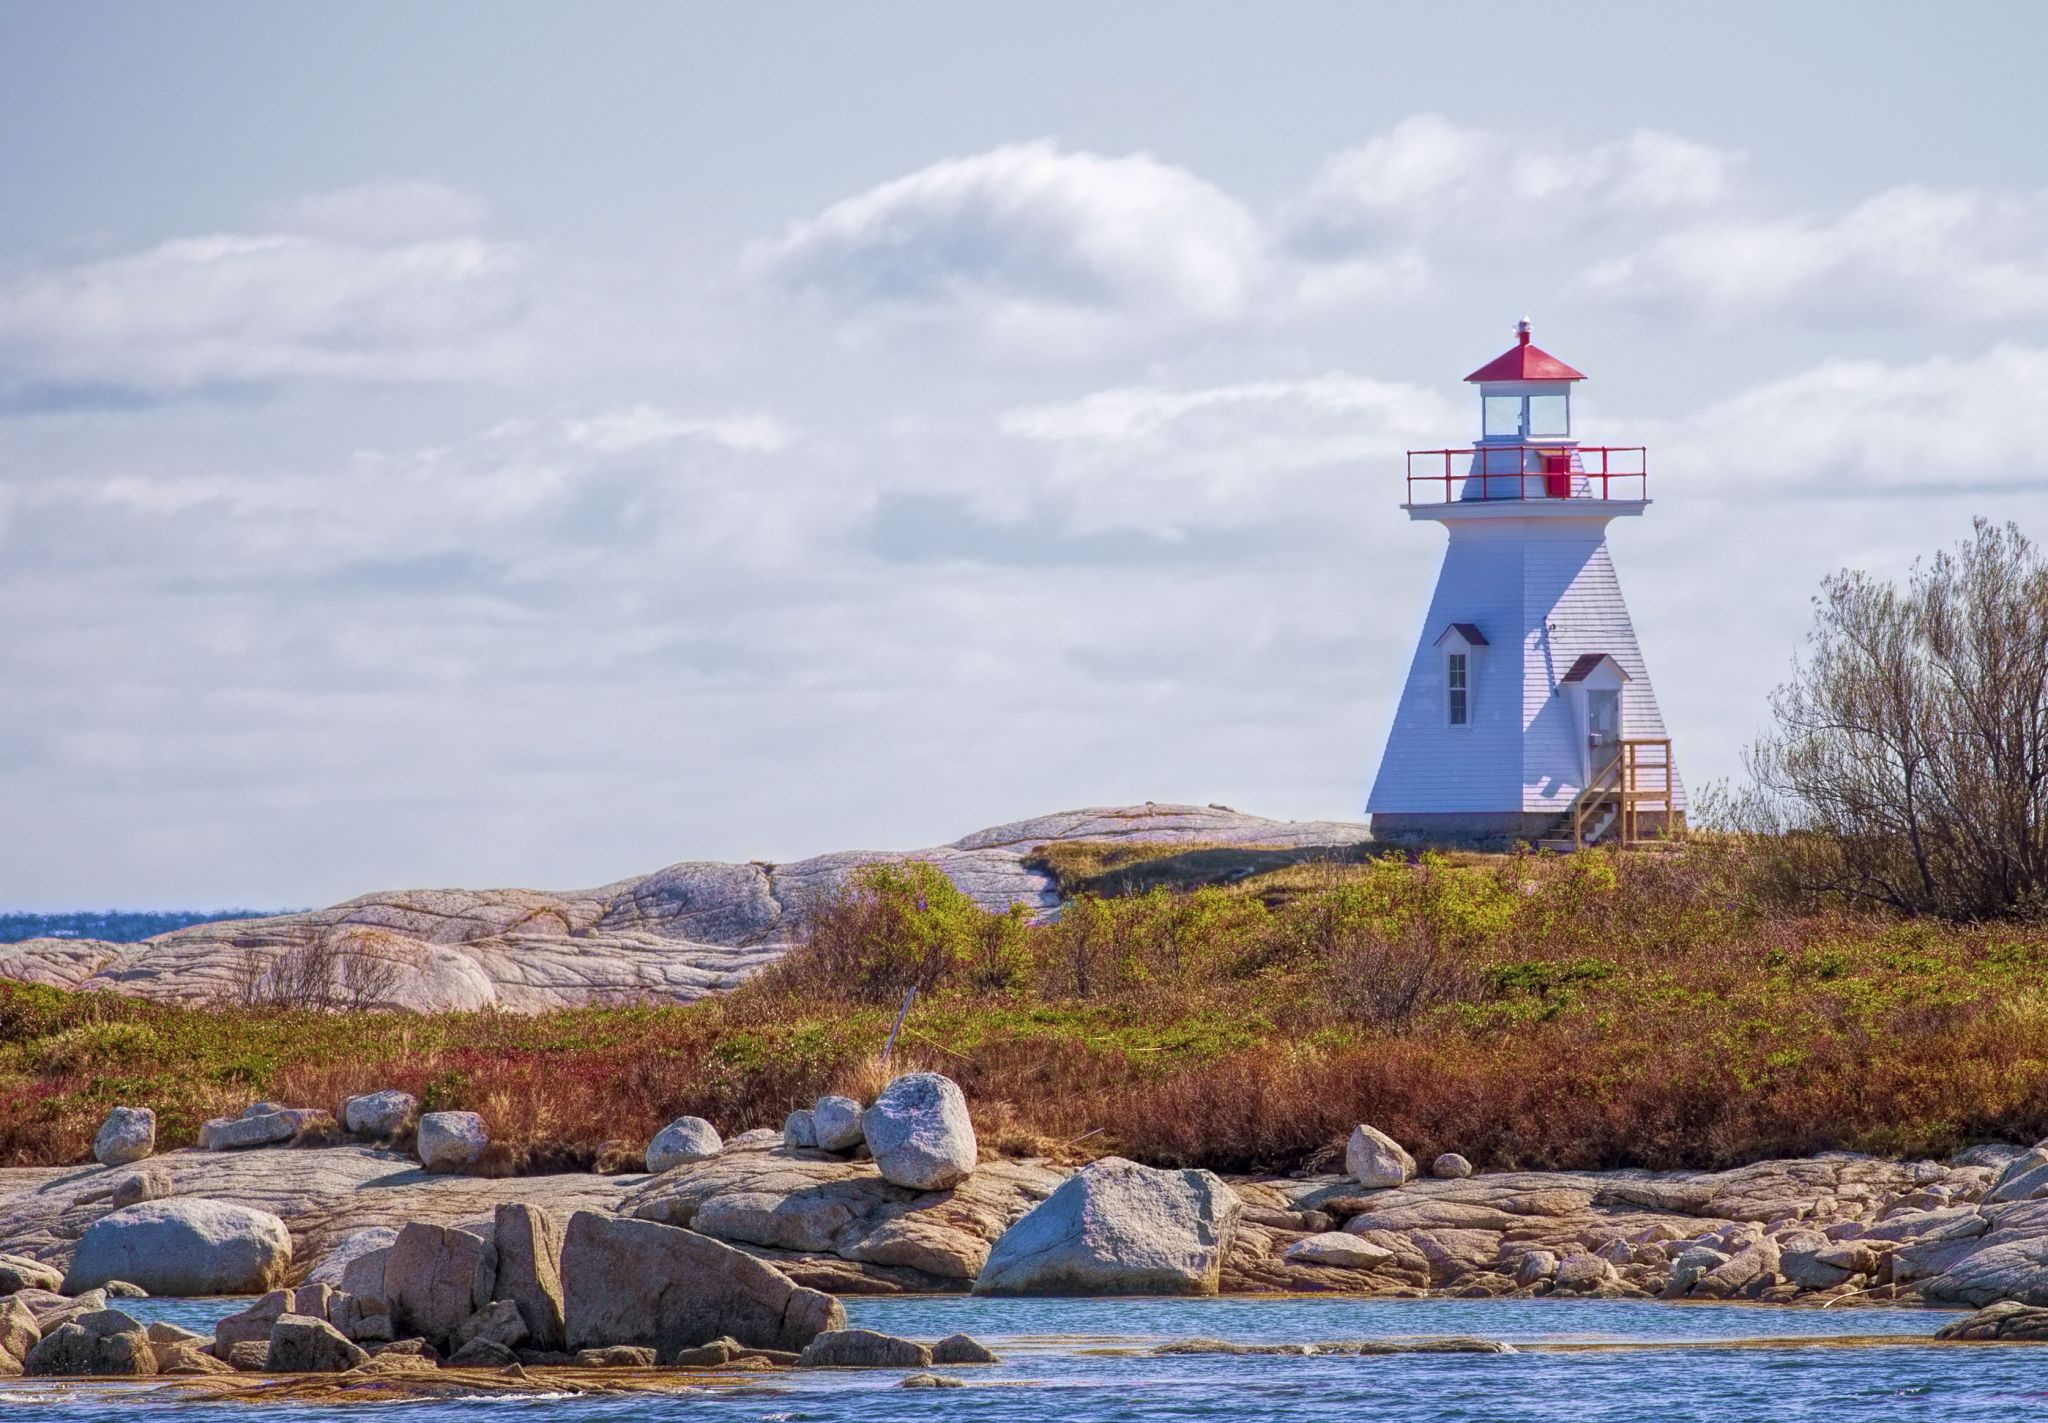 Terence Bay Lighthouse, Canada